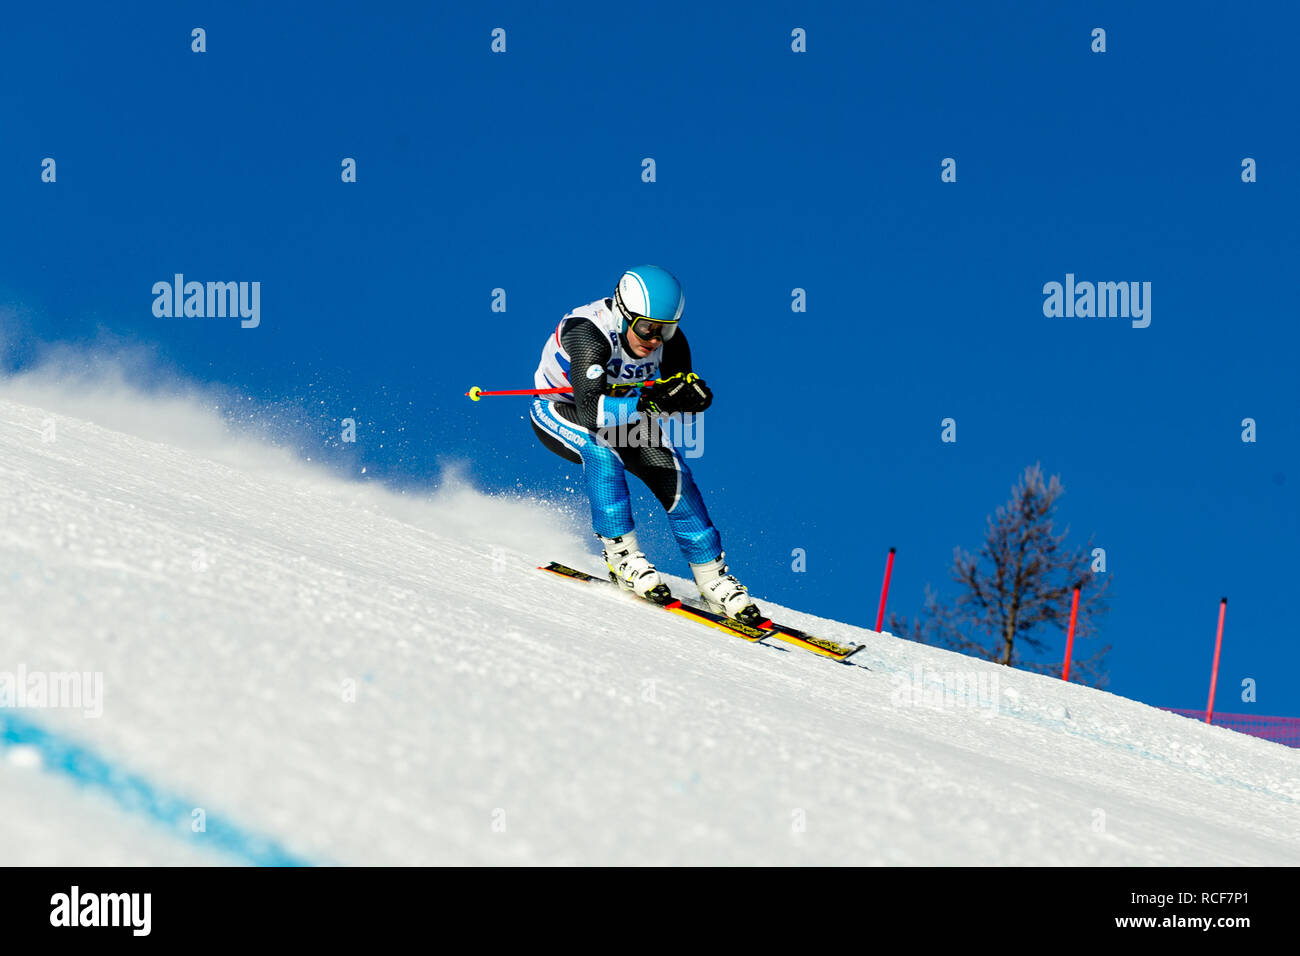 Magnitogorsk, Russia - December 18, 2018: men athlete racer in downhill skiing during National championship alpine skiing - Stock Image